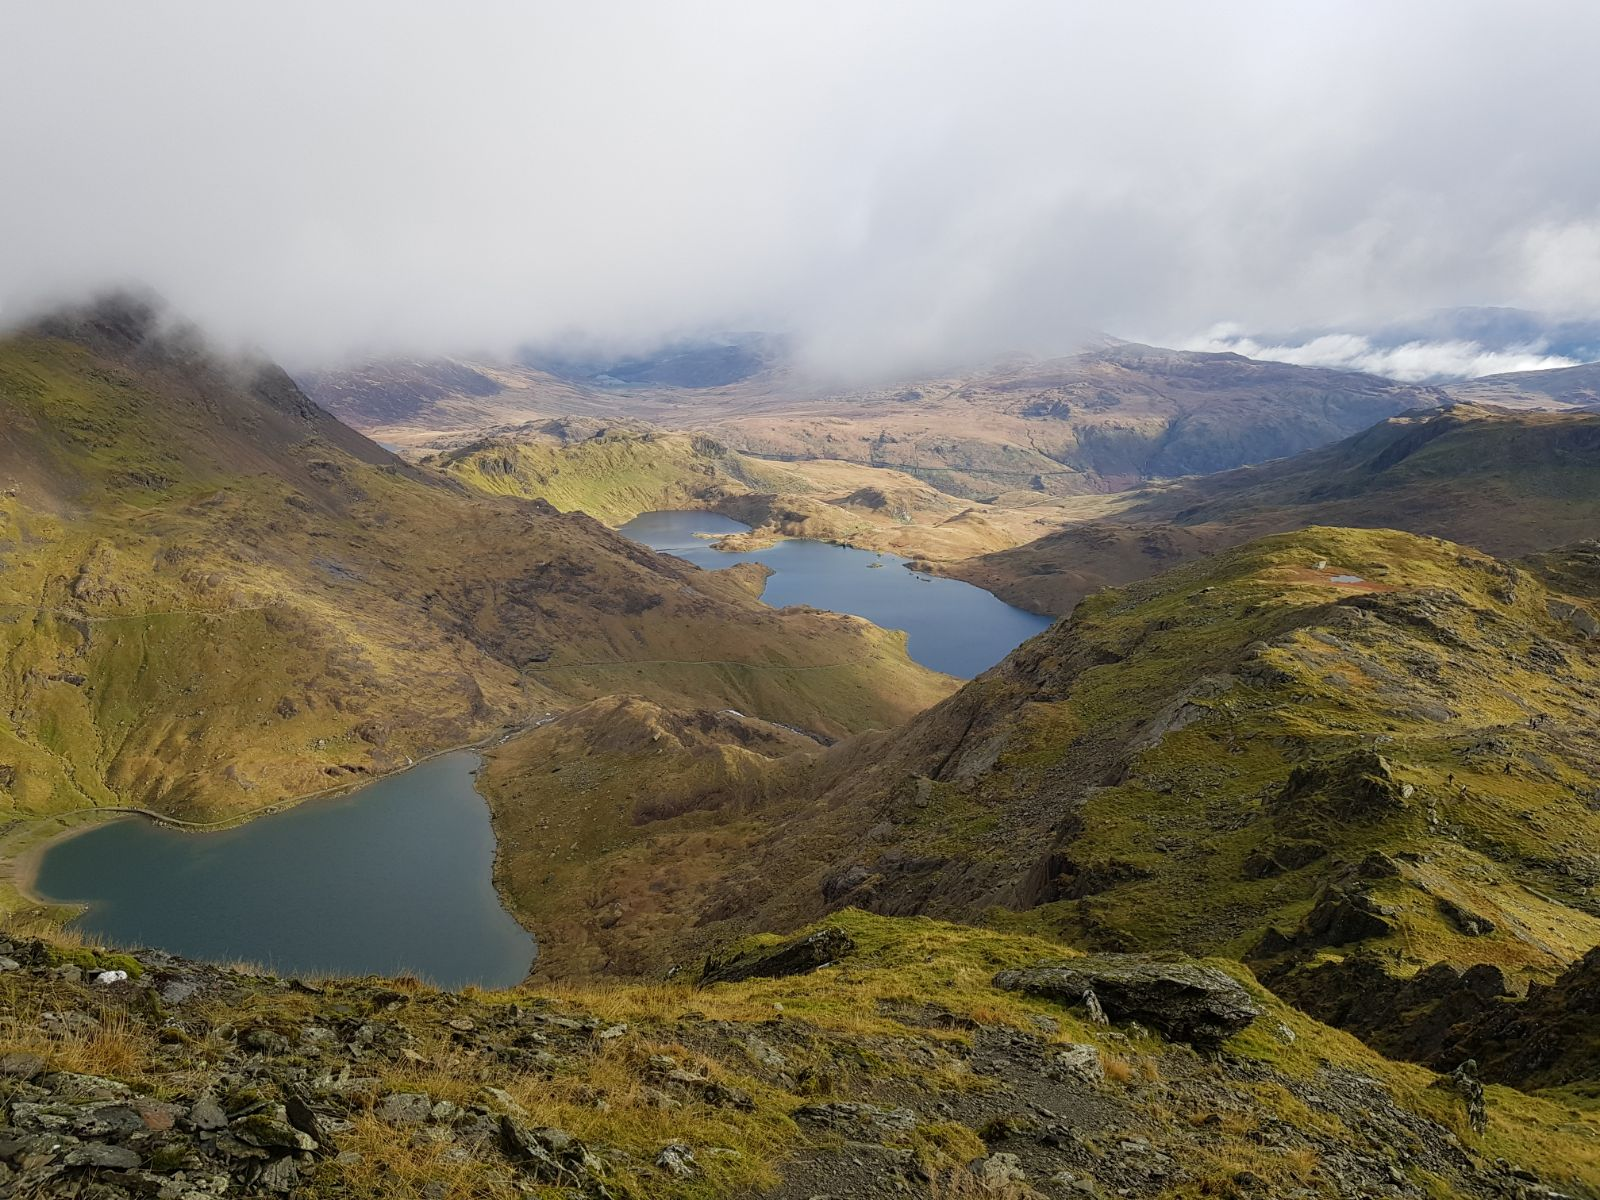 North Wales trip report   Avon Mountaineering Club